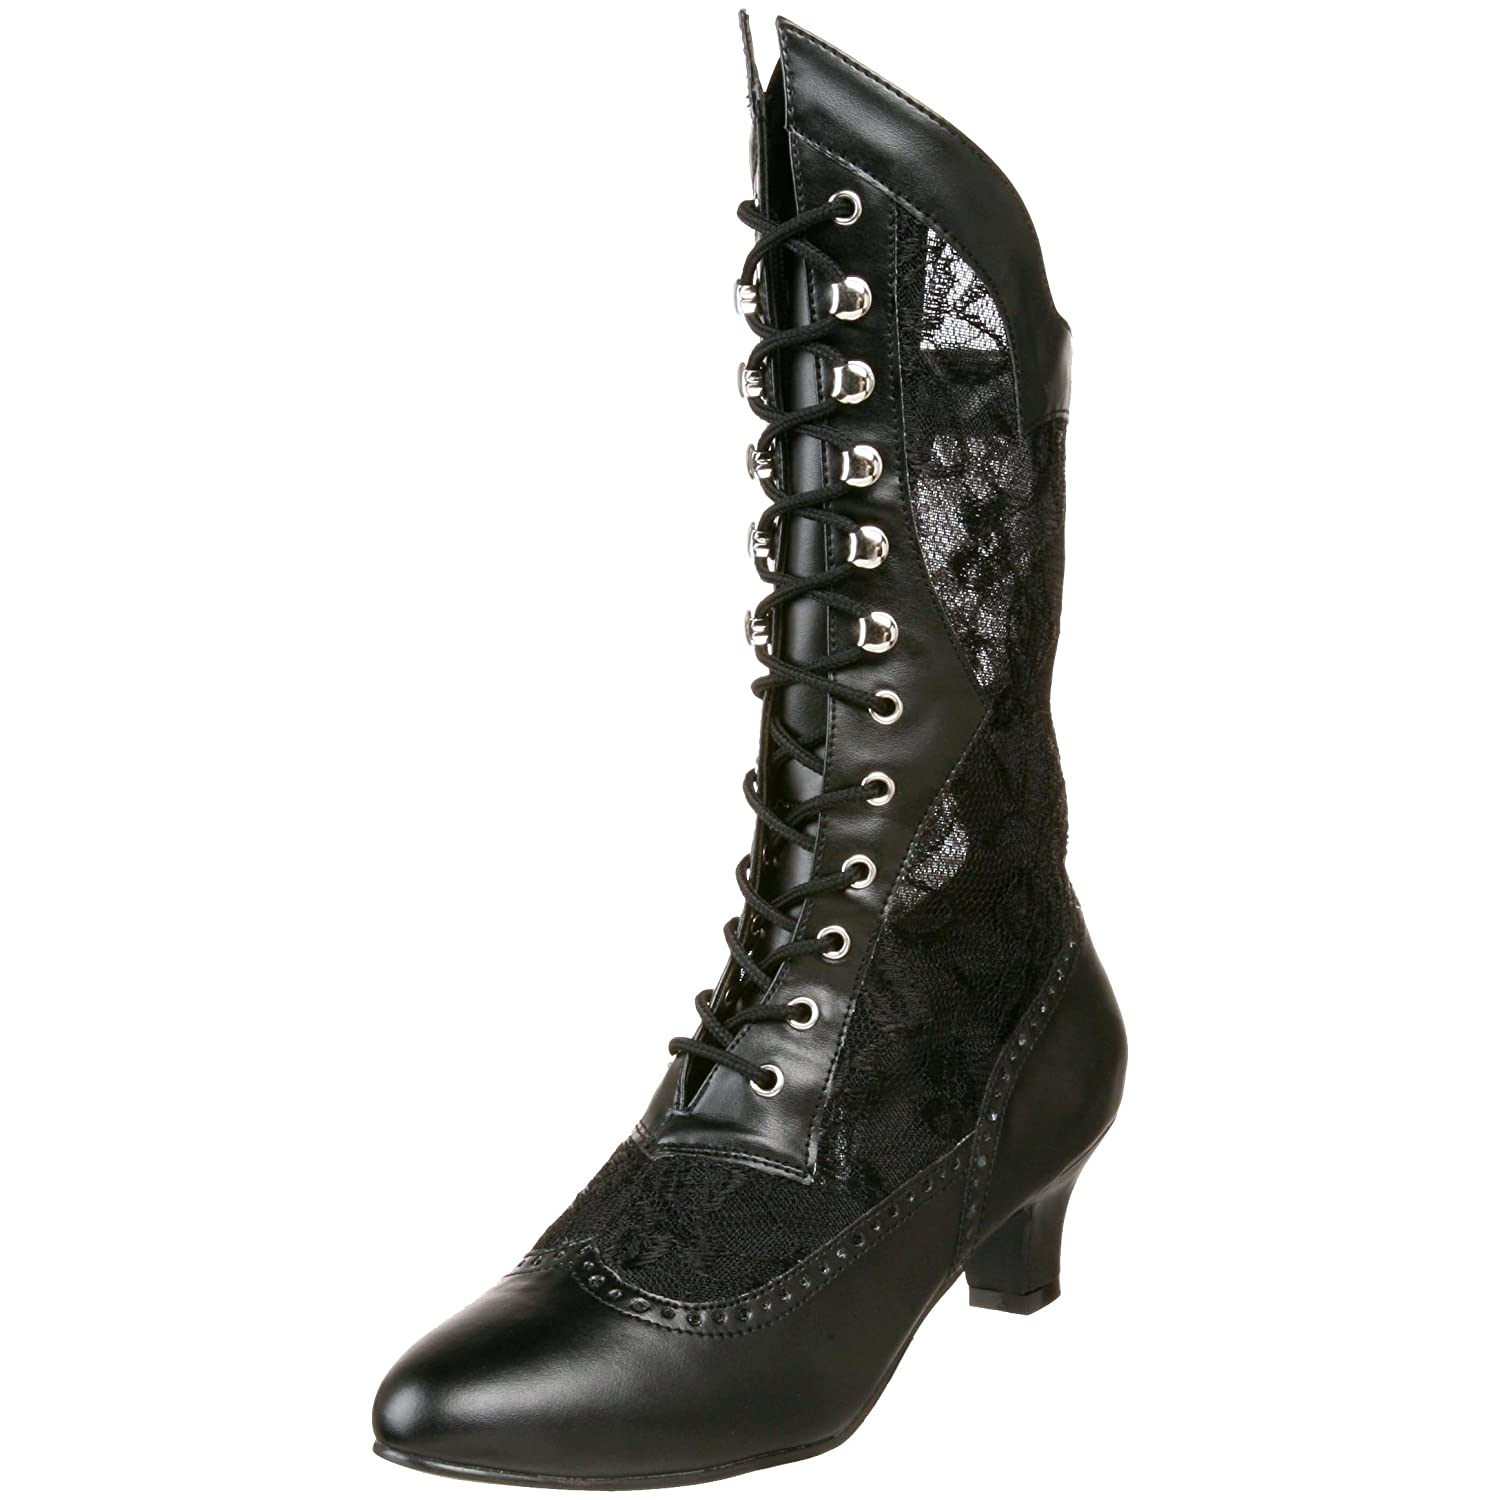 Vintage Boots, Retro Boots Funtasma Dame115/B/Pu Women Warm Lining Ankle Boots £74.05 AT vintagedancer.com